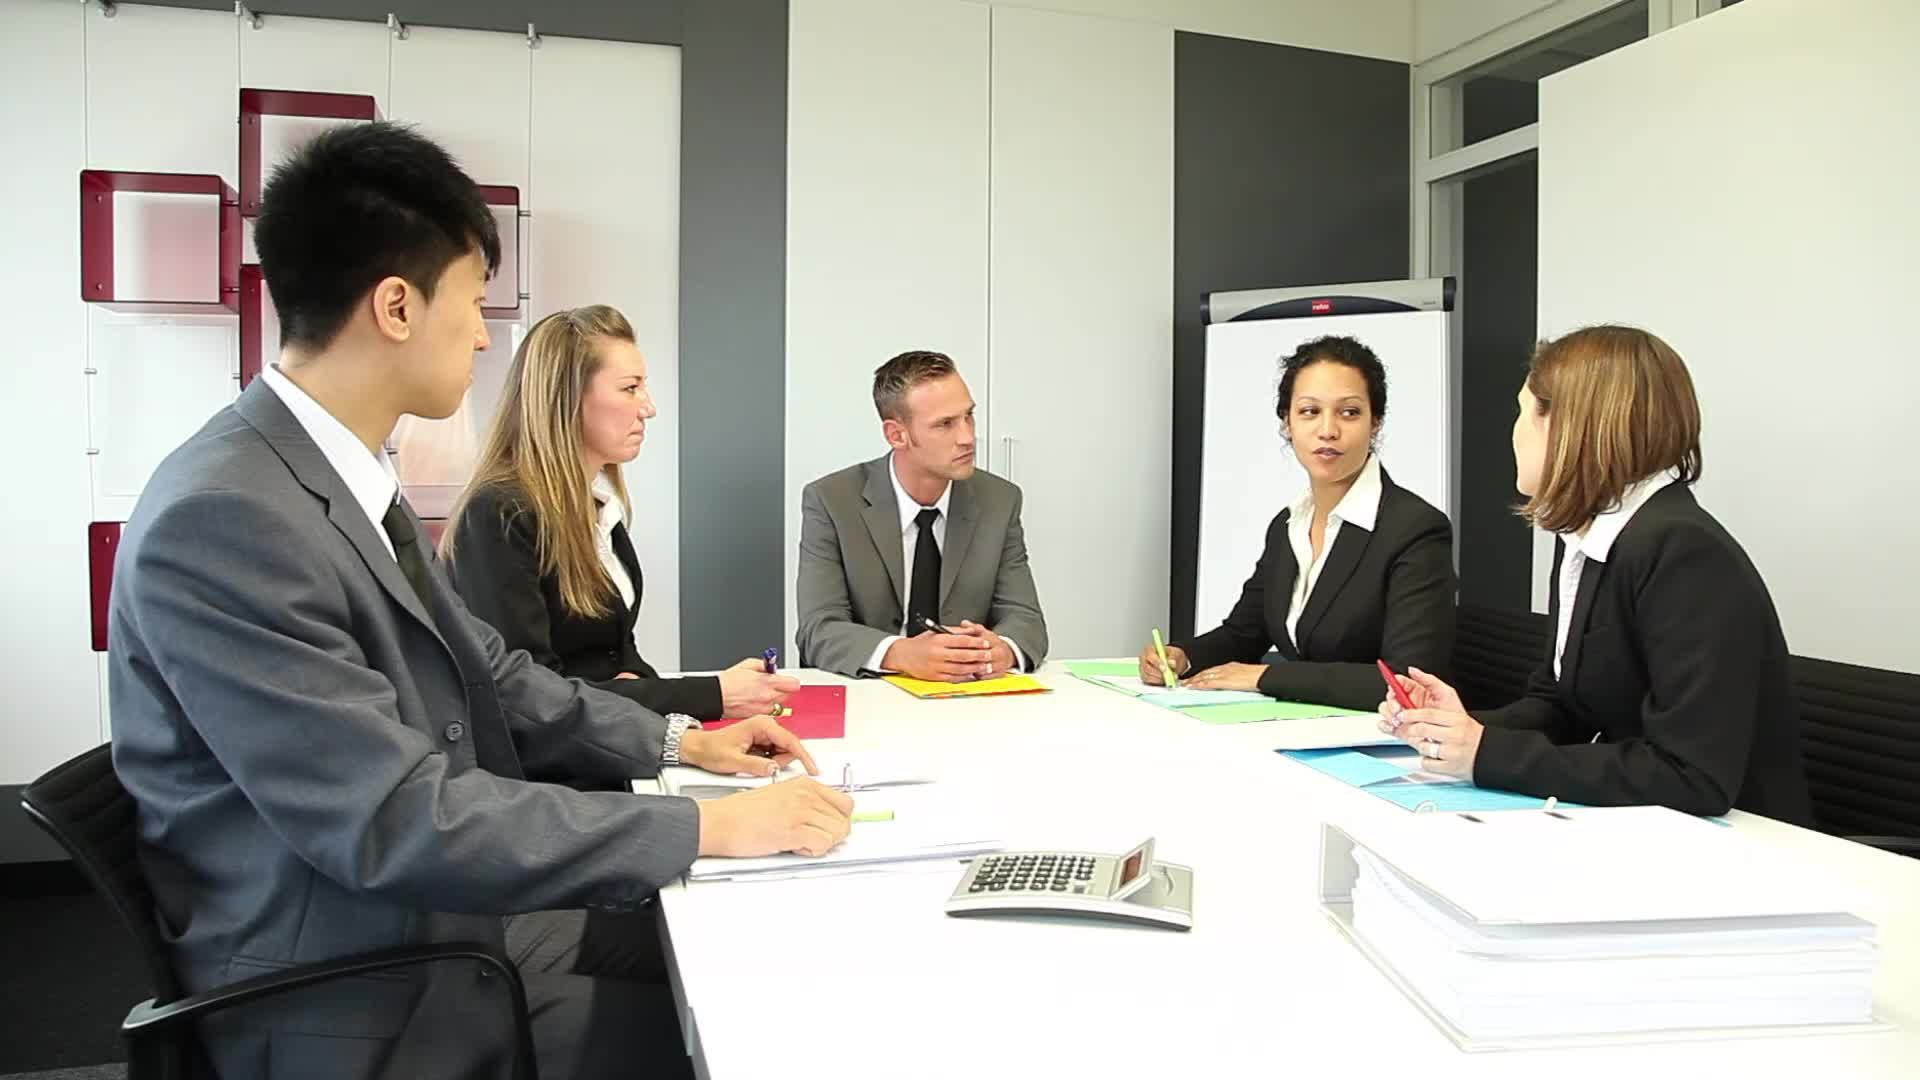 Five International People Having A Business Meeting In A